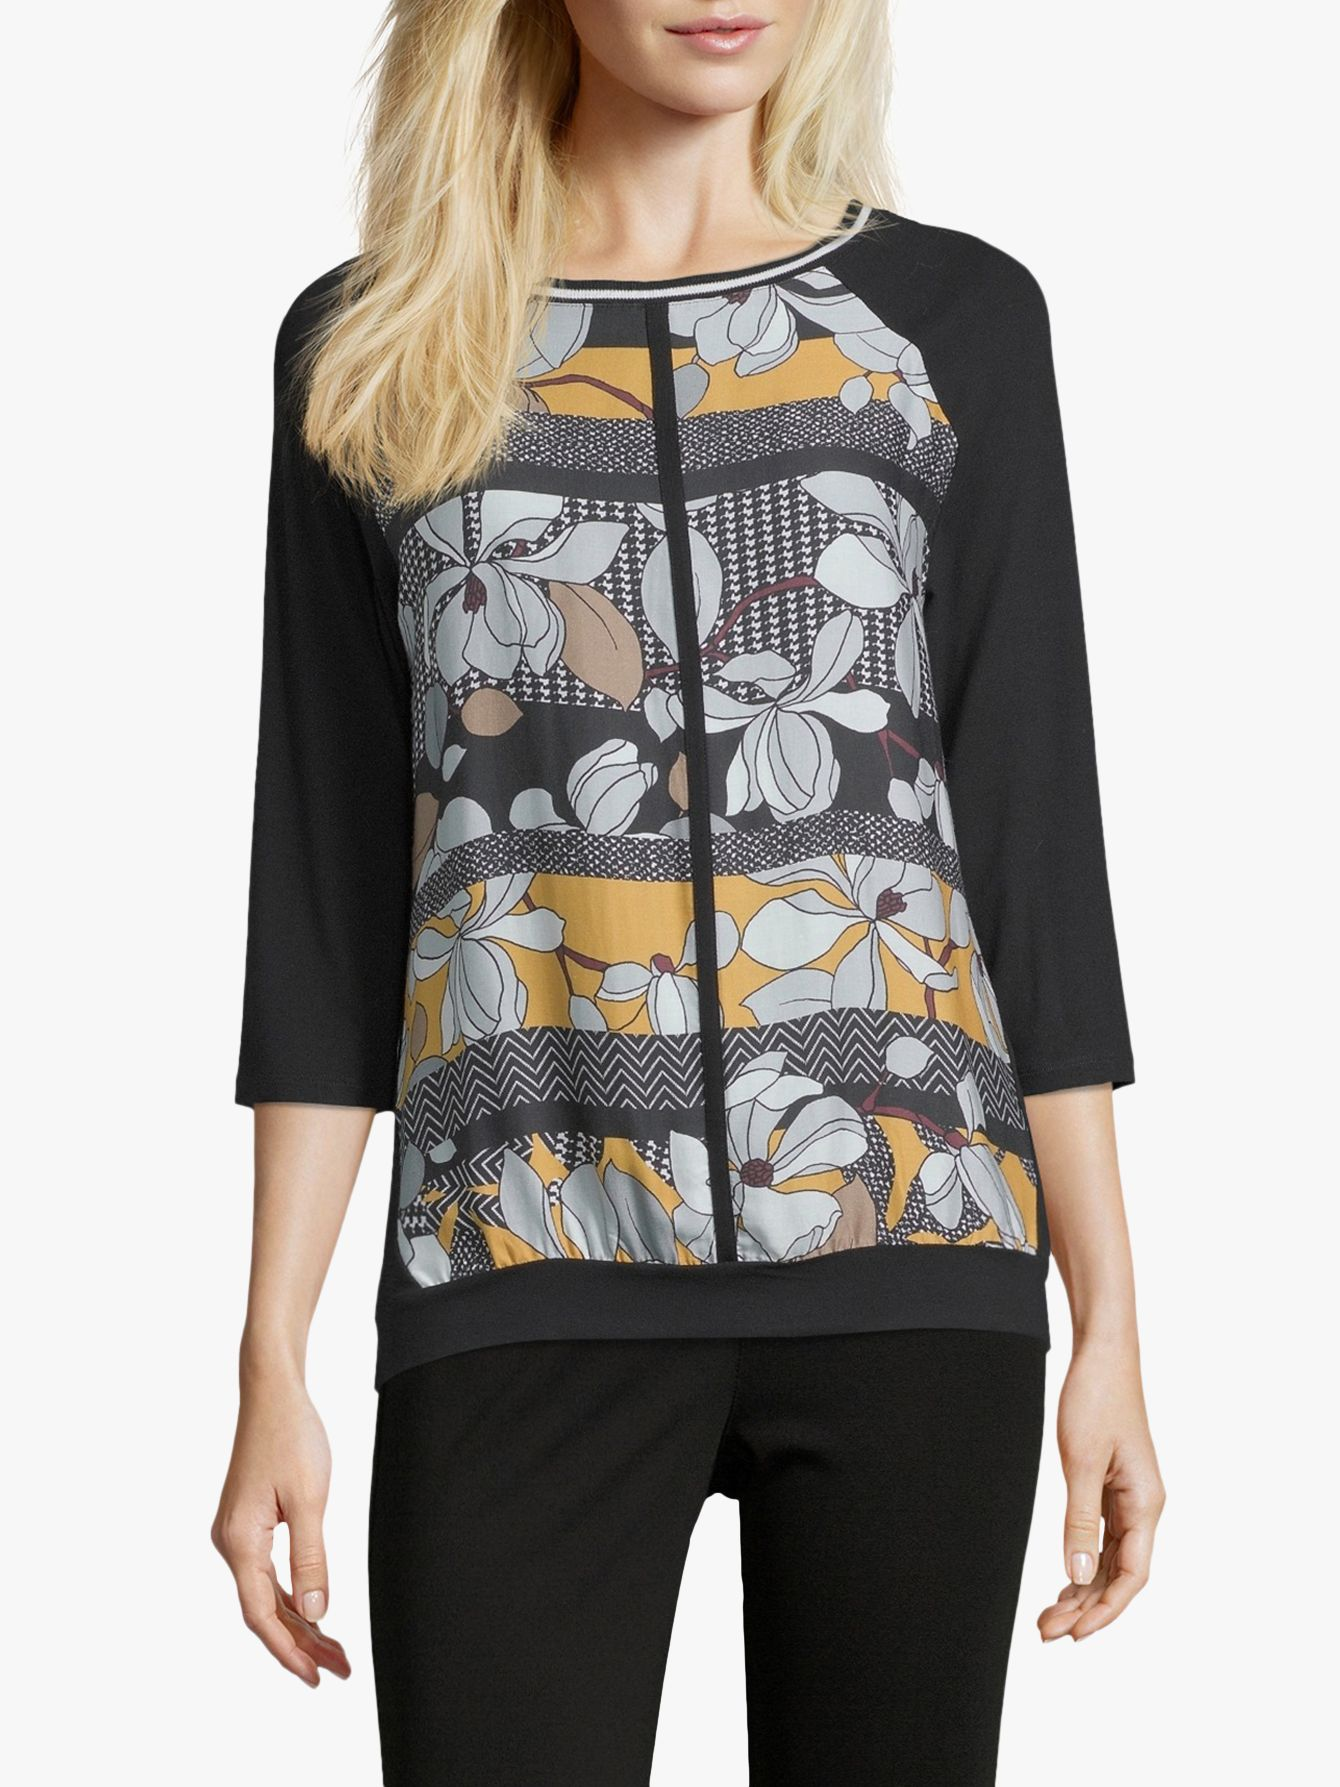 Betty Barclay Betty Barclay Floral Print Top, Black/Yellow